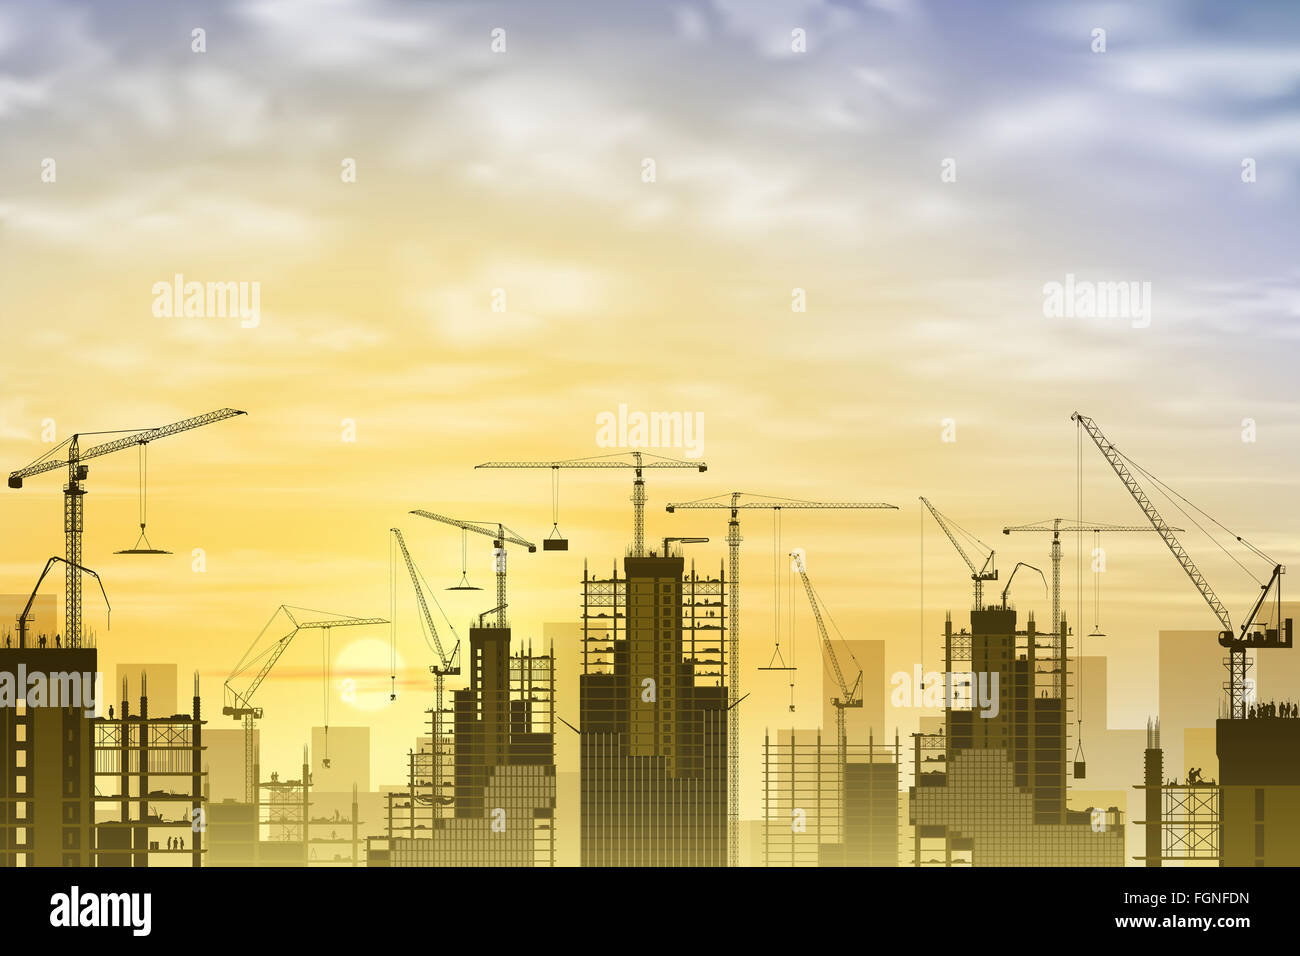 A Construction Site with Lots of Tower Cranes with Sunset, Sunrise. - Stock Image